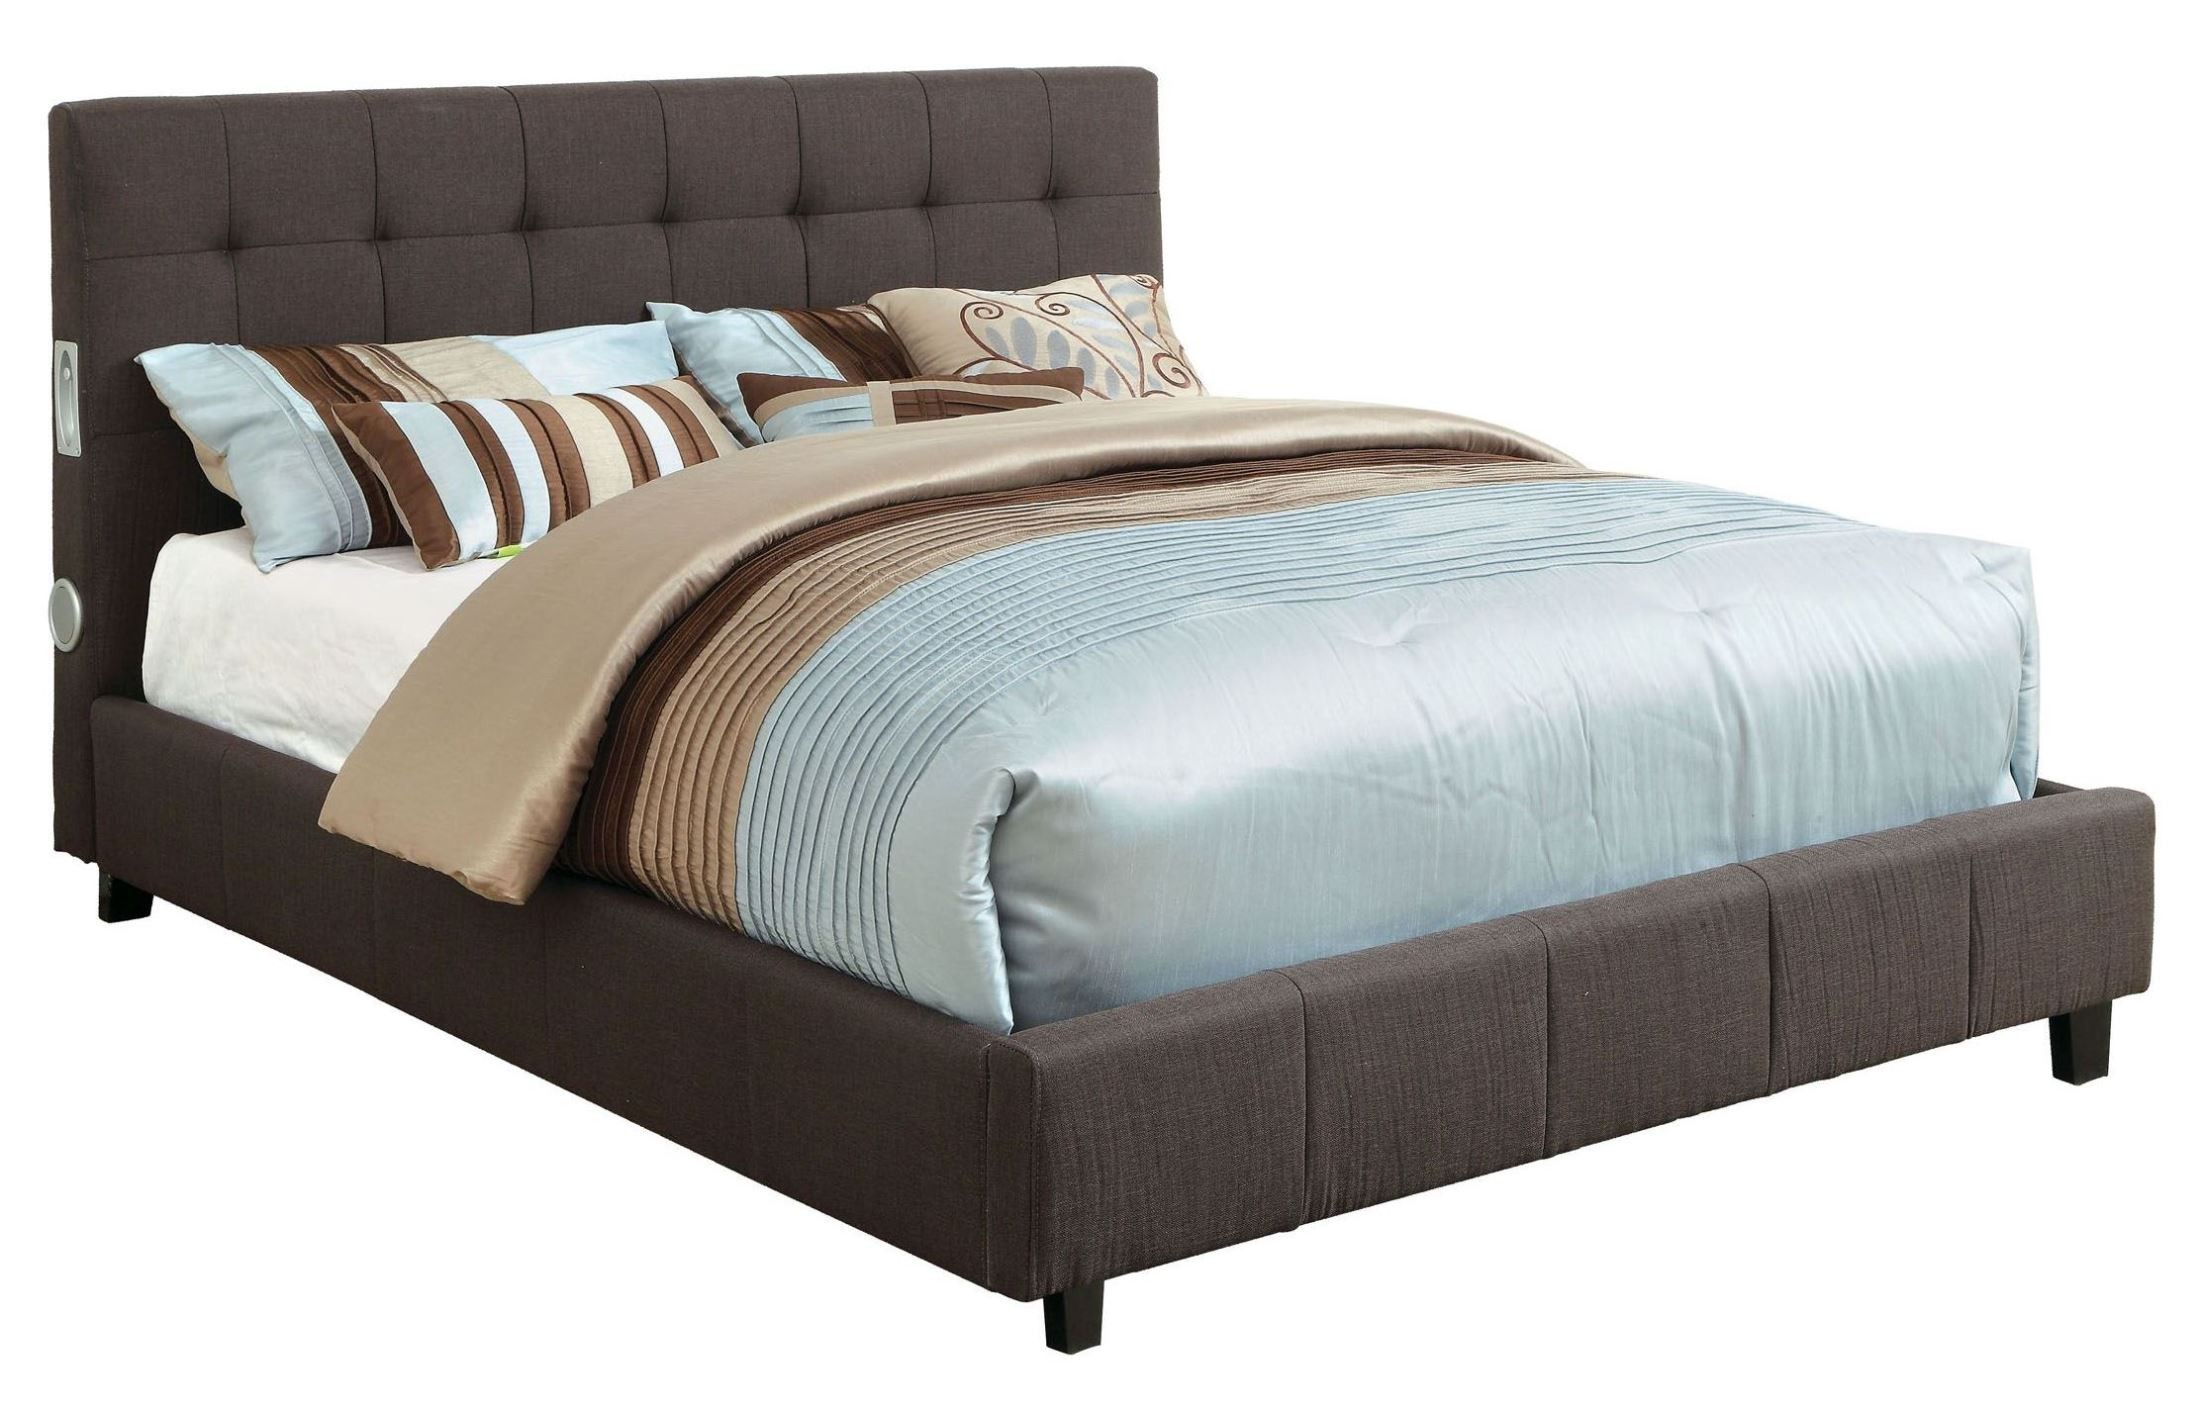 Dillan Gray Padded Fabric Queen Size Platform Bed And Bluetooth Speakers